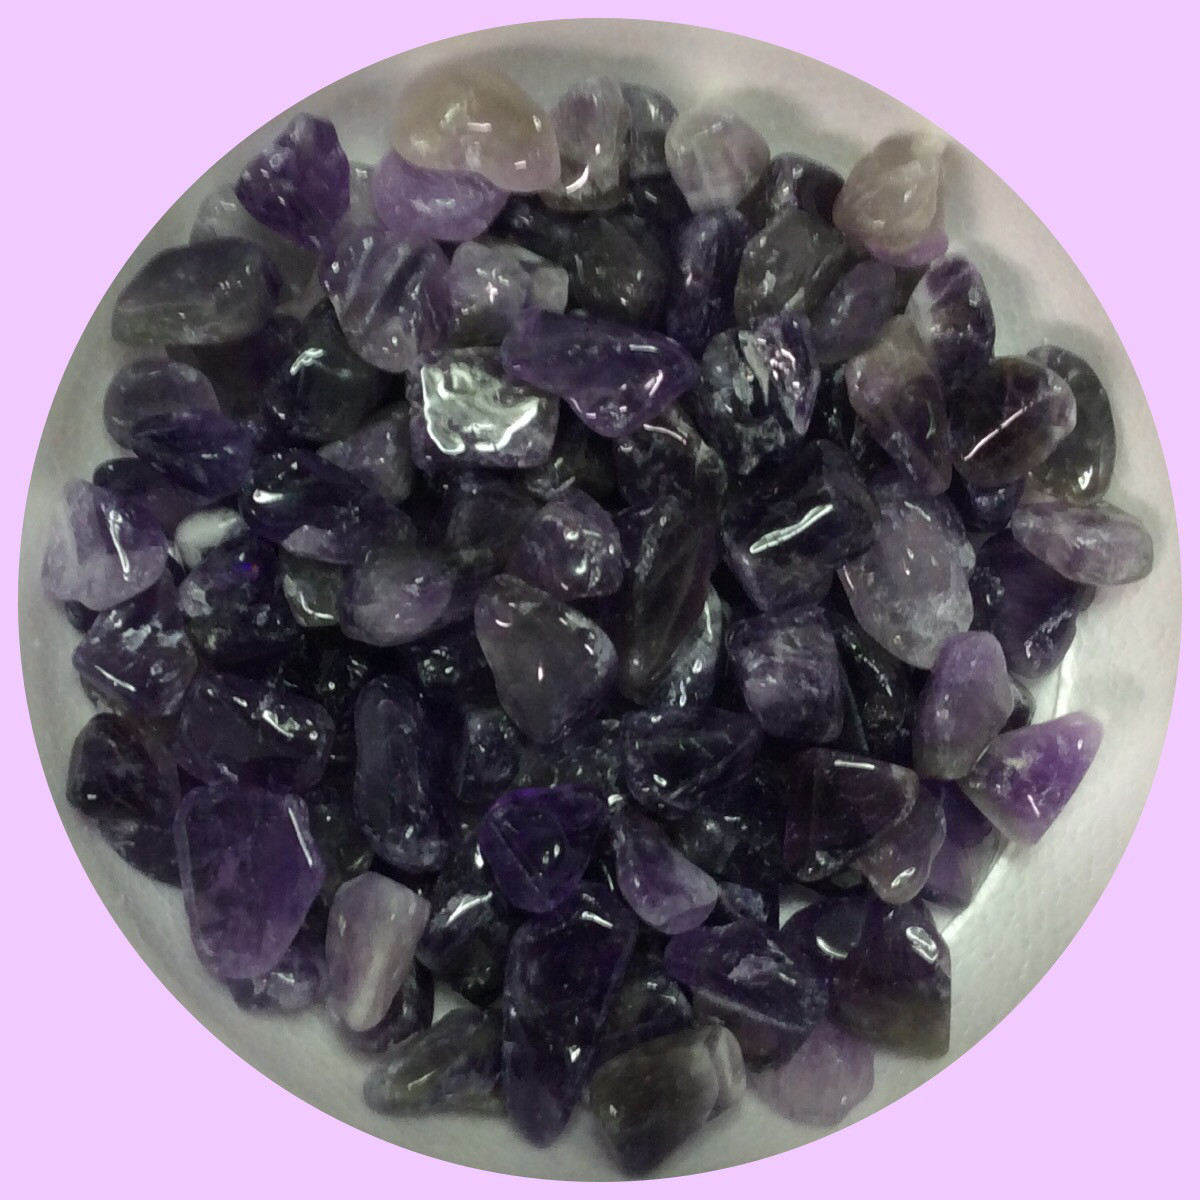 Real Amethyst Tumbled Stone Irregular Shaped 150+gr (NEW) Real Amethyst